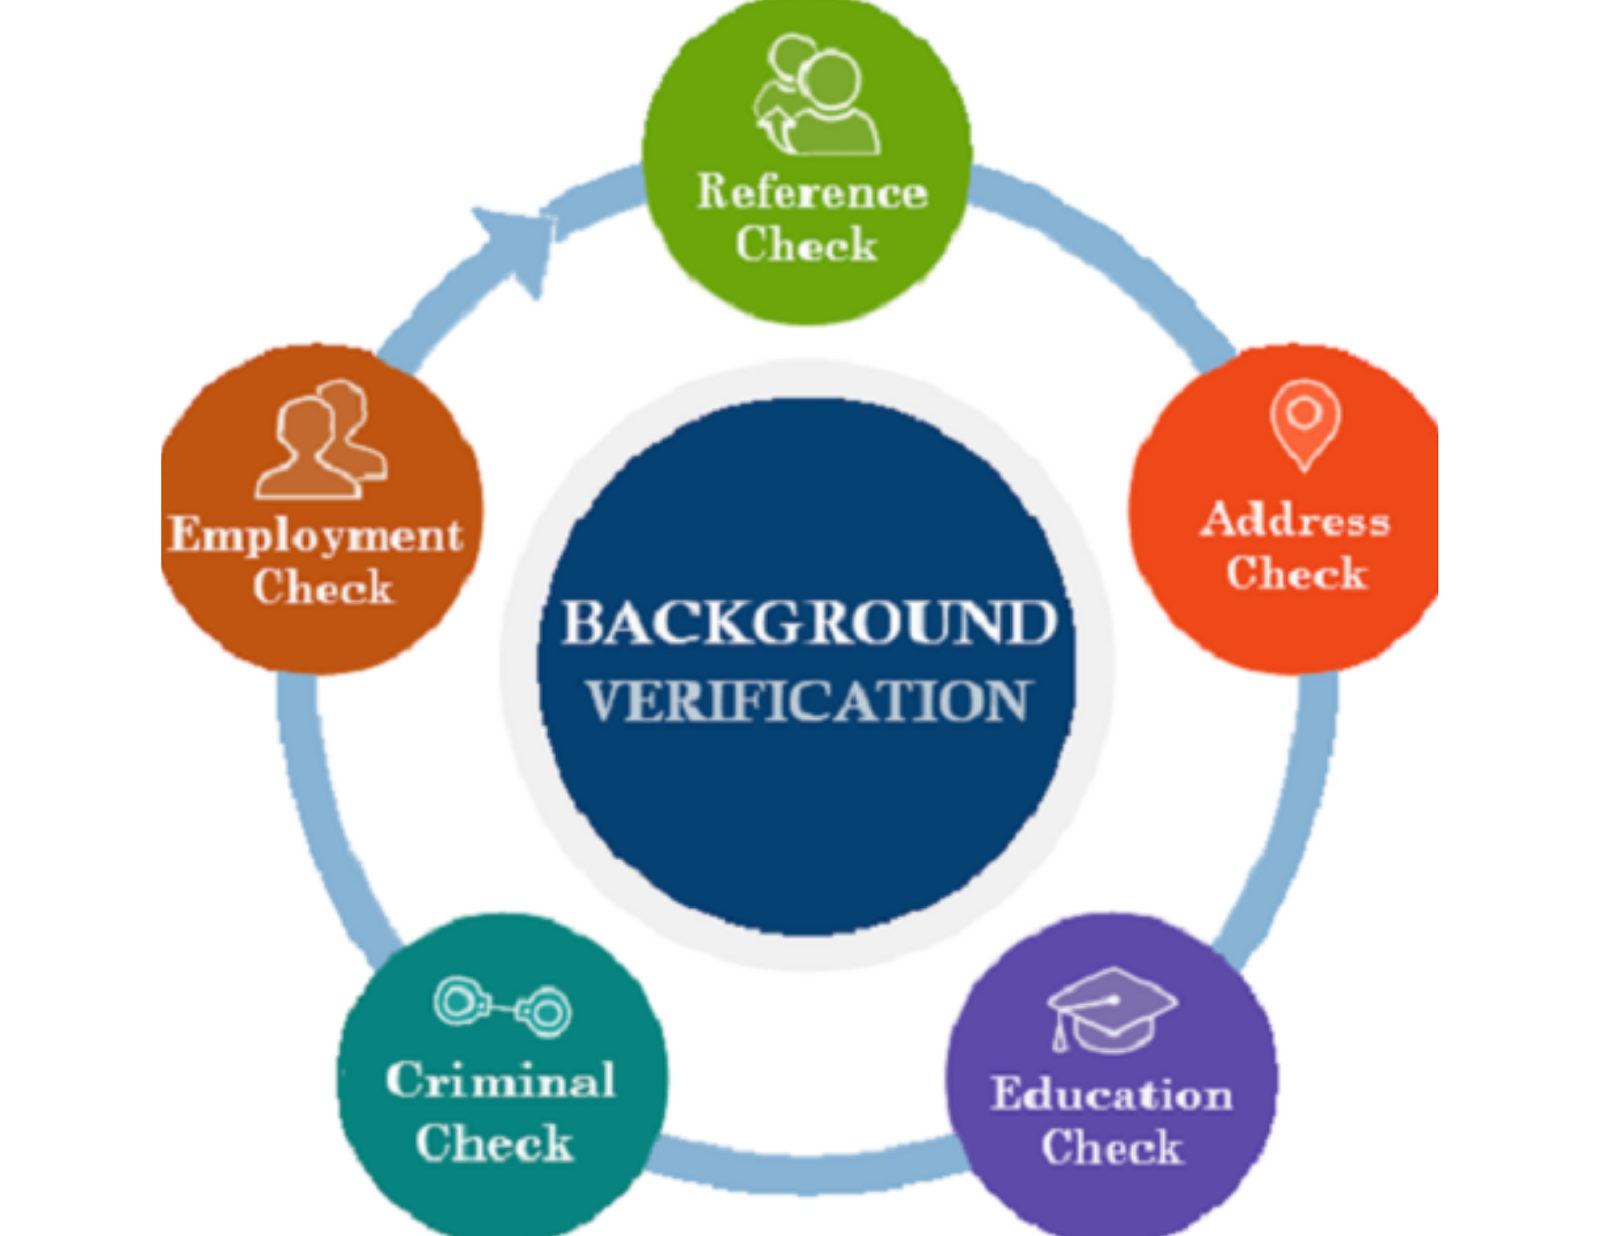 What are the different types of background checks?